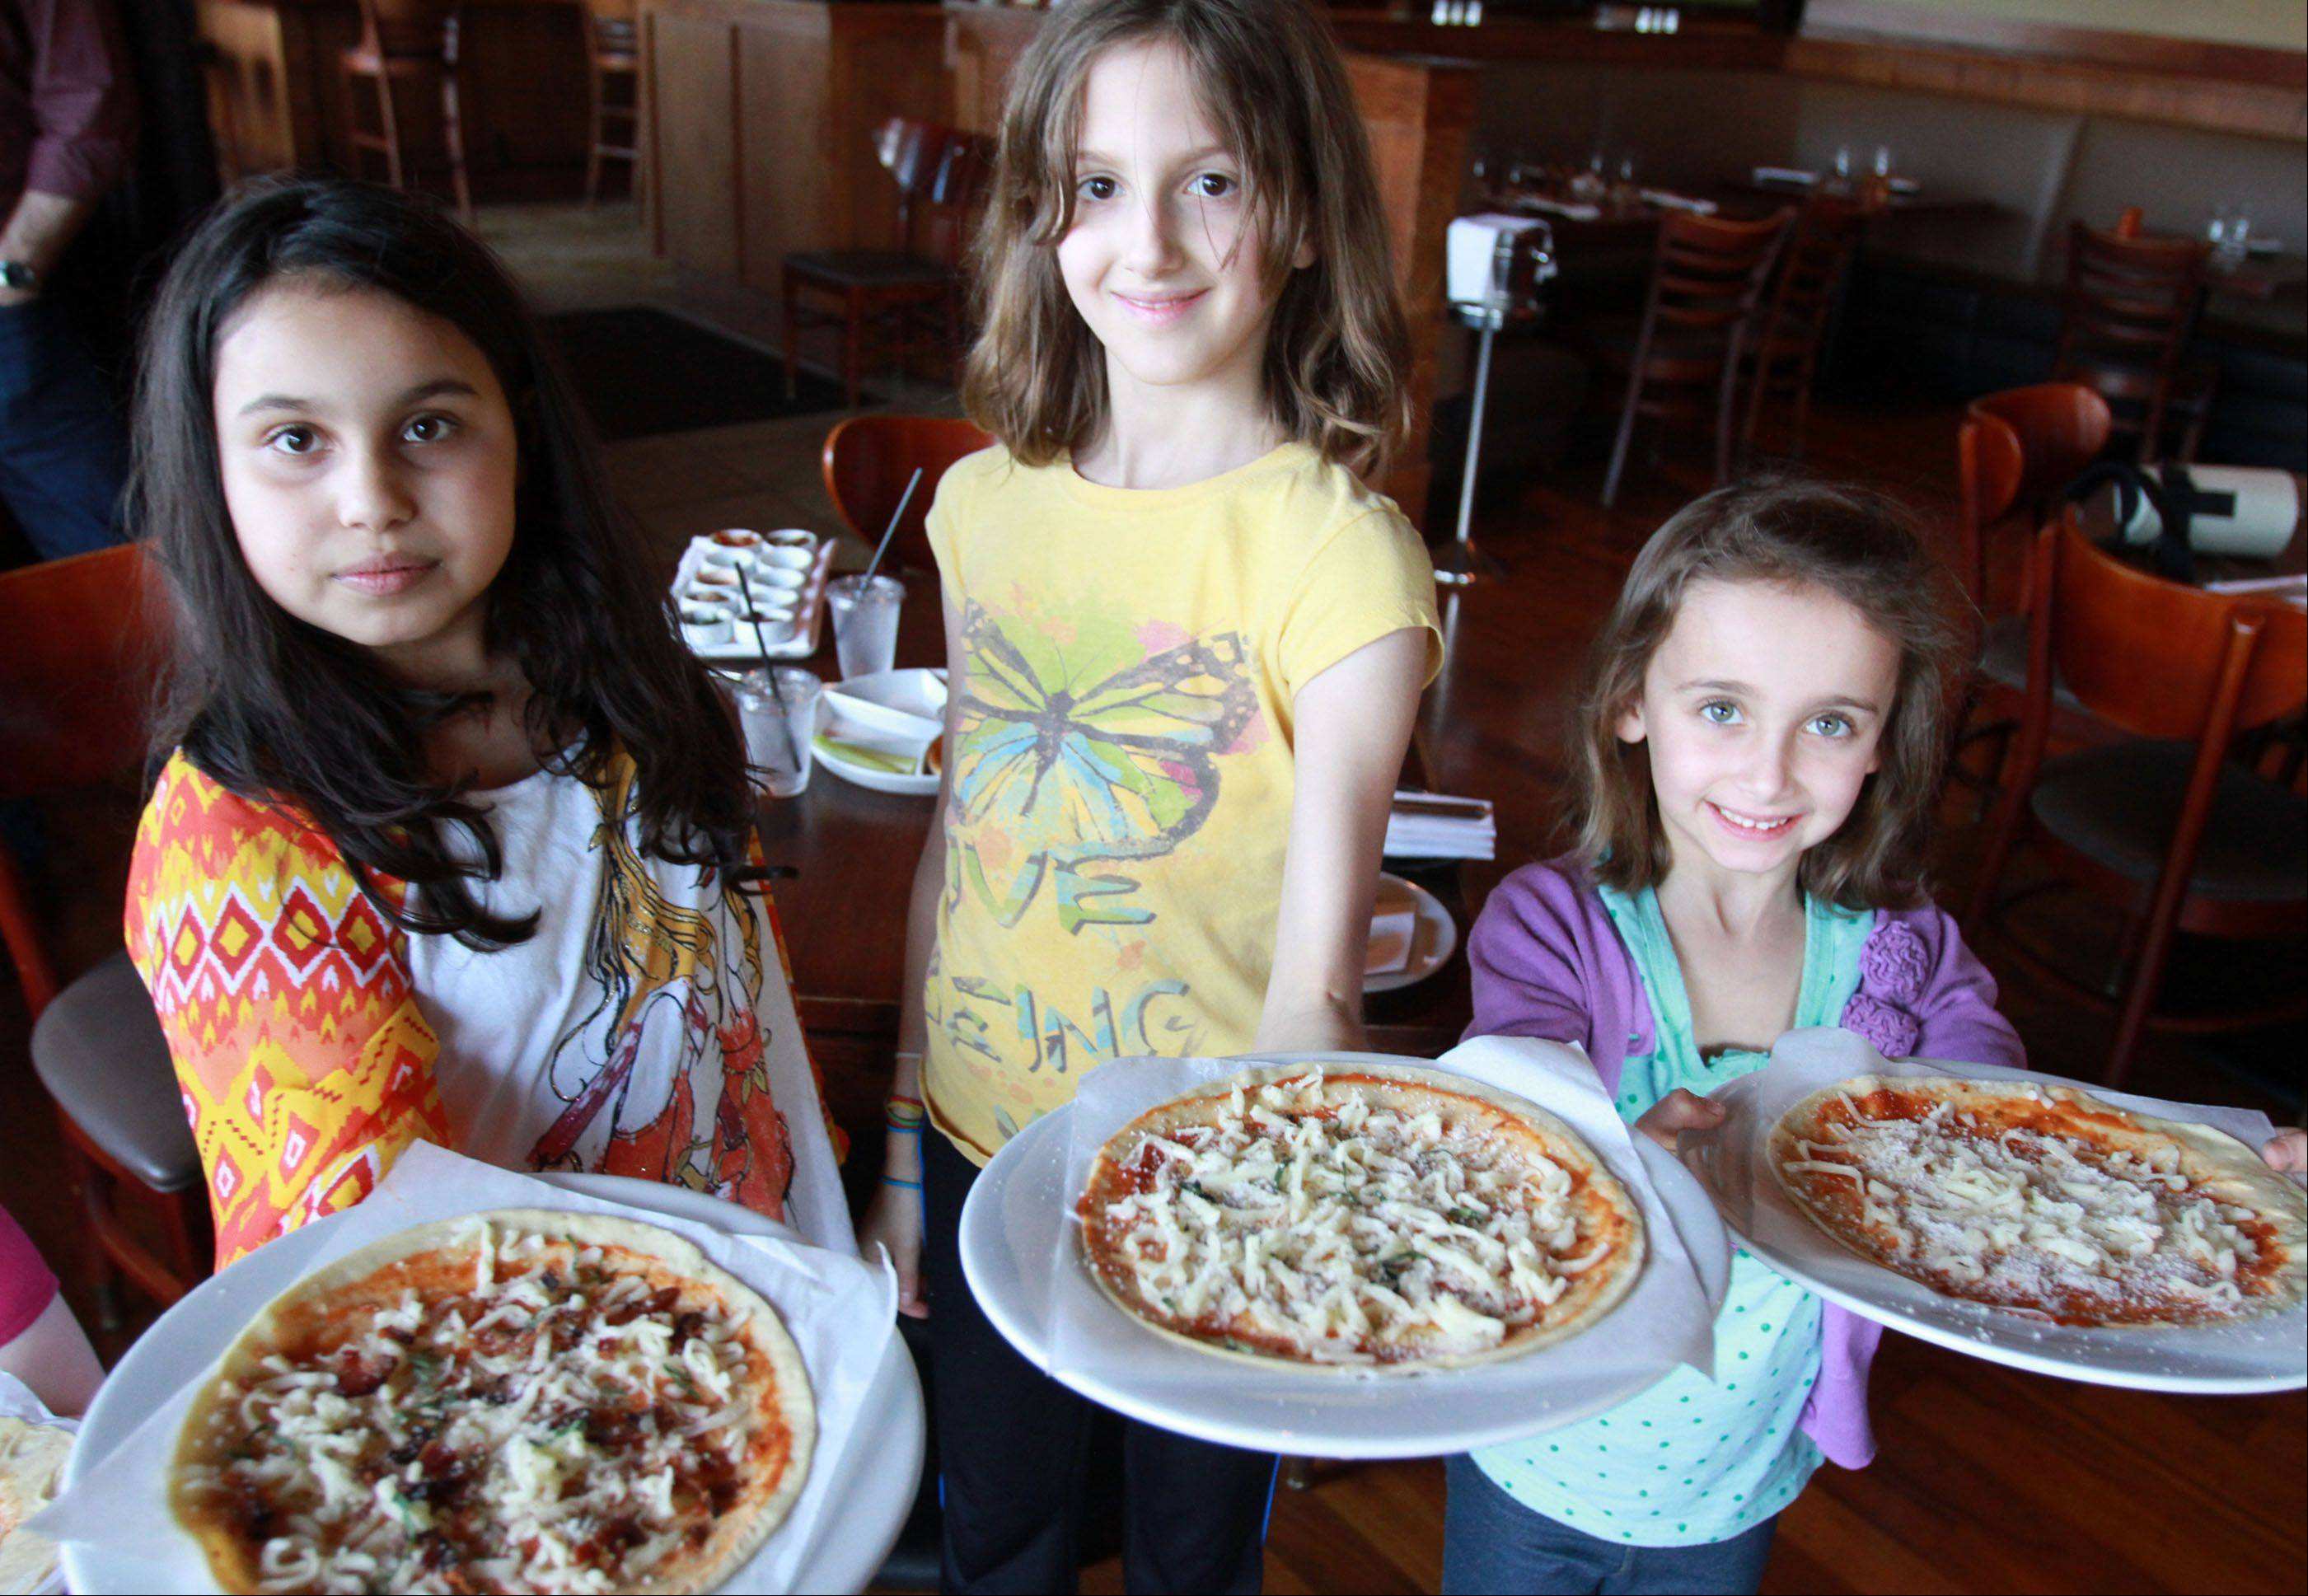 Jaya Nambiar, 9, from left, Kaya Booth, 9, both of Wilmette, and Helena Samson, 6, of Northbrook show healthy pizzas they made for themselves at Prairie Grass Cafe in Northbrook on Friday, April 26. The pizza making was hosted by Sarah Stegner, co-chef and co-owner, who is one of the founding members of the �Healthy Fare for Kids� initiative, which encourages restaurants to offer healthier food for children.